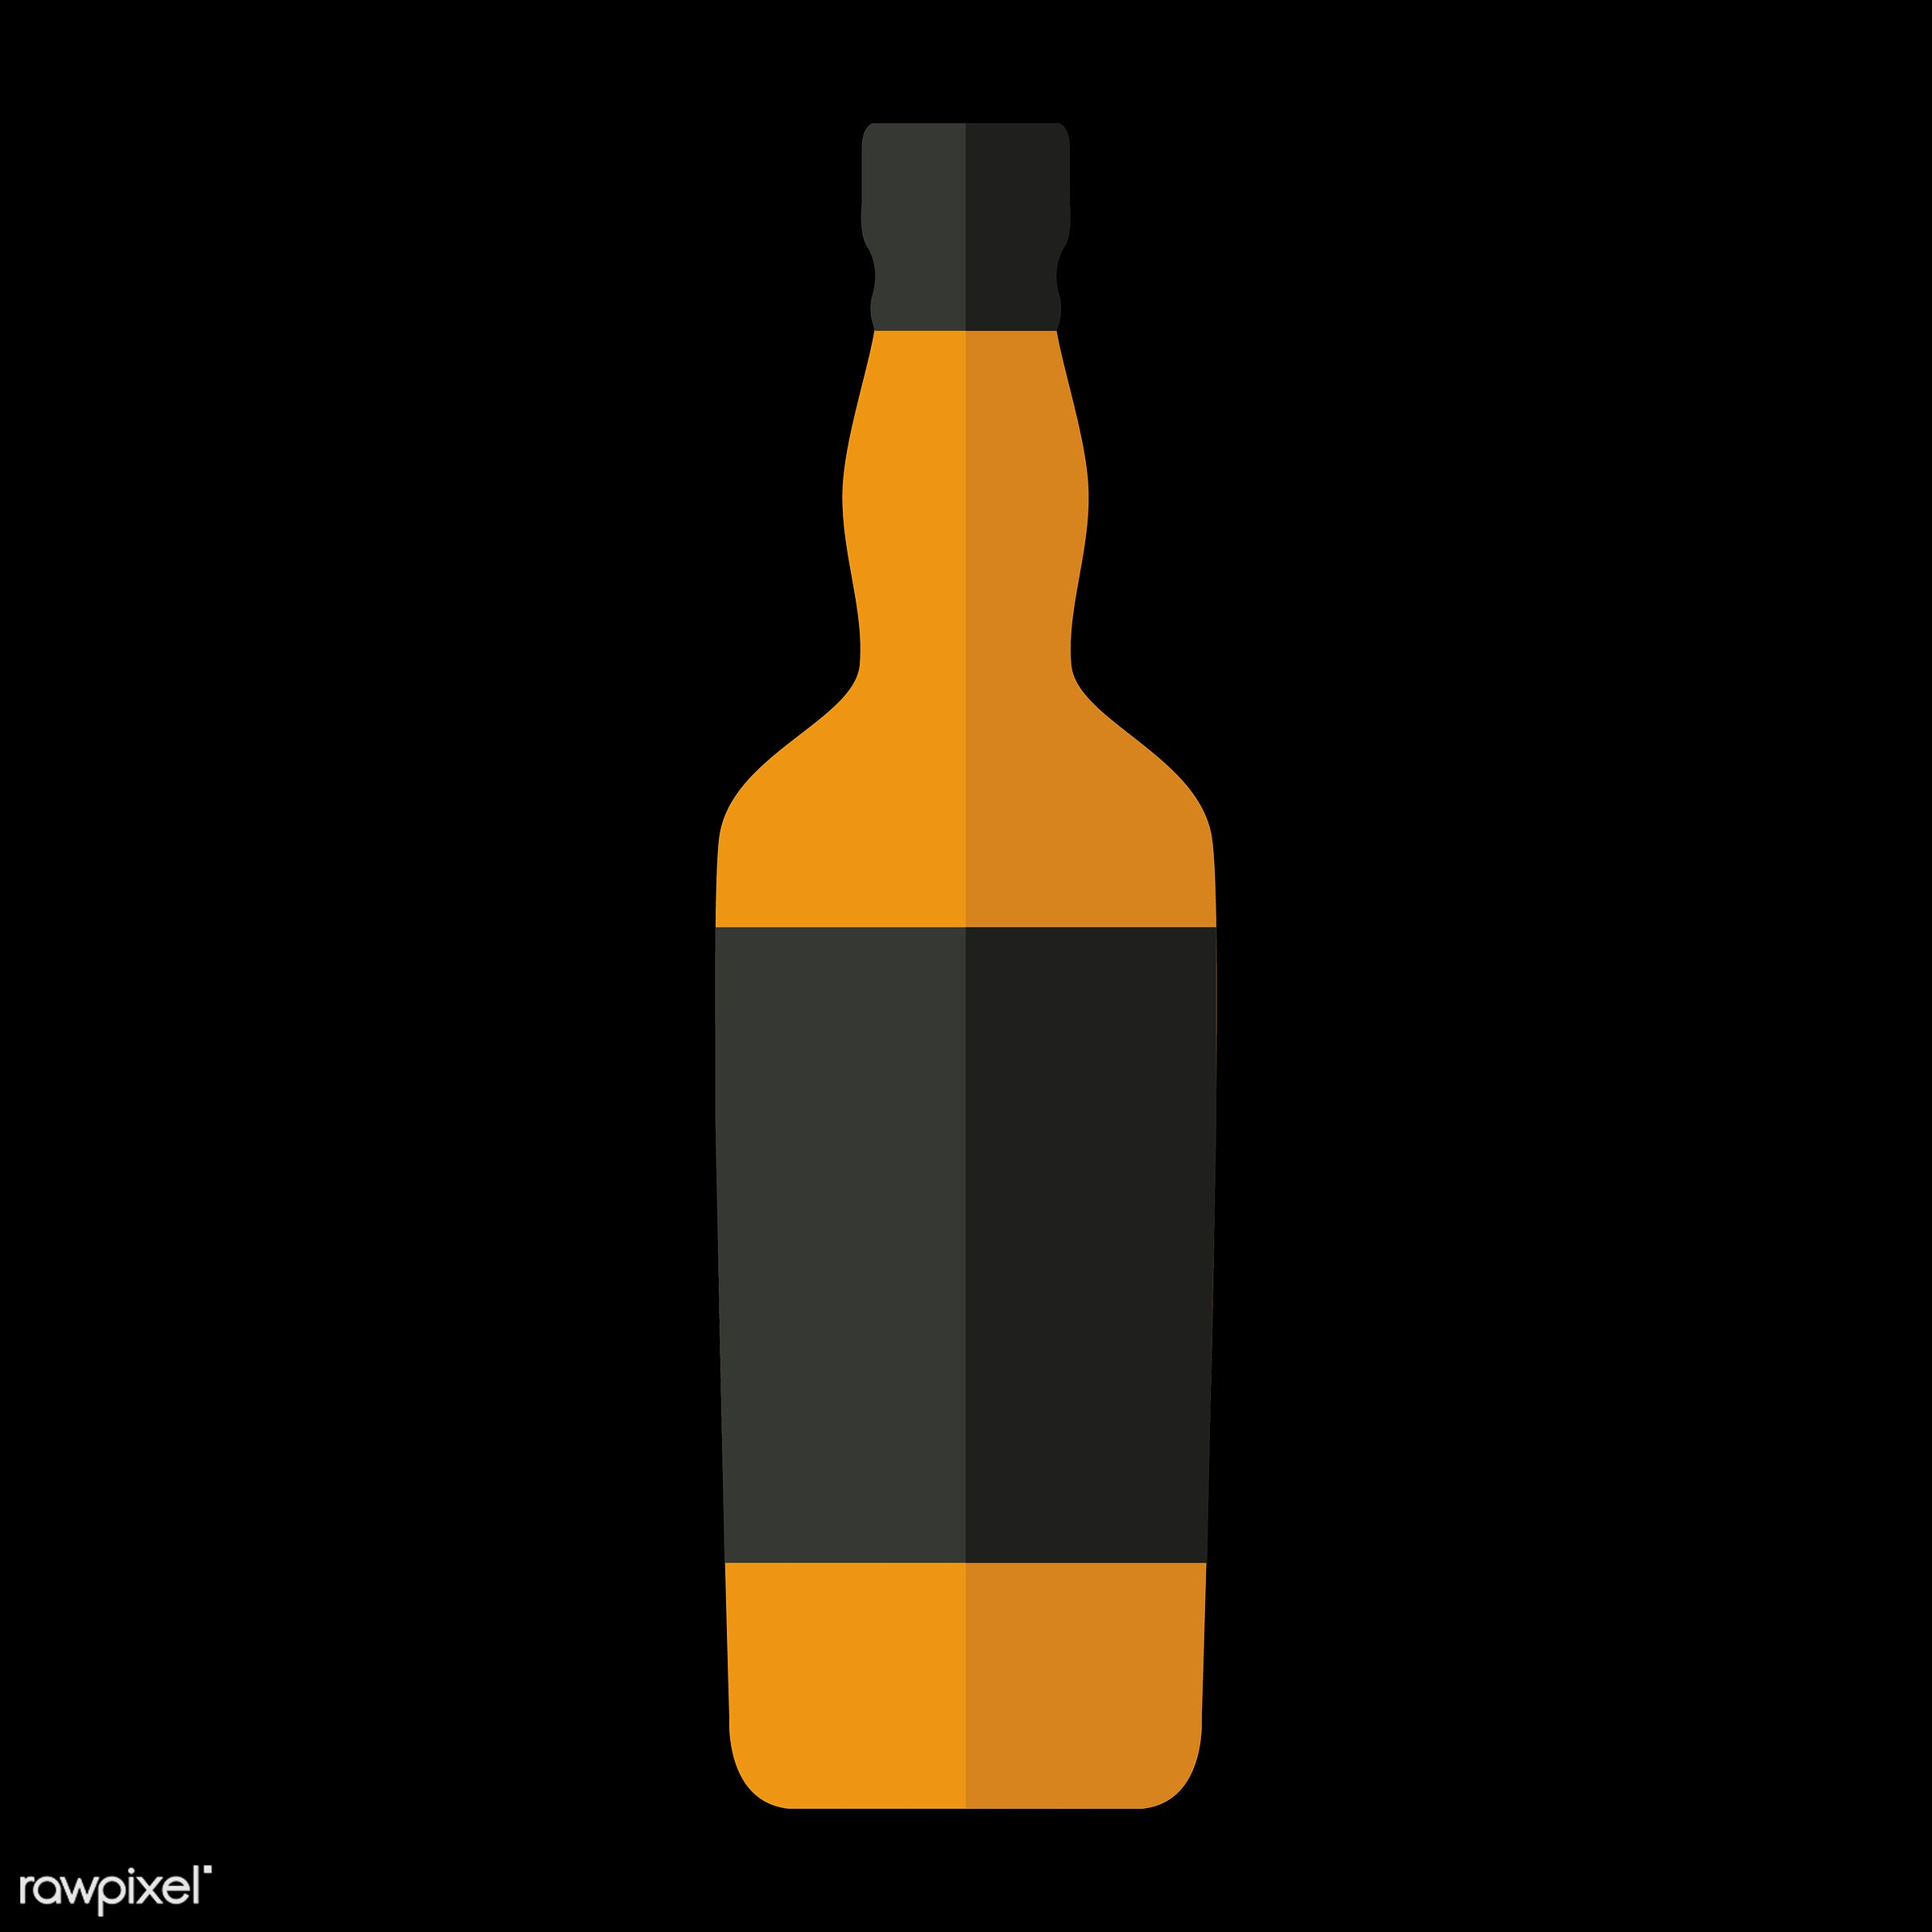 Liquor bottle vector - vector, graphic, illustration, icon, symbol, colorful, cute, drink, beverage, water, liquor, vodka,...